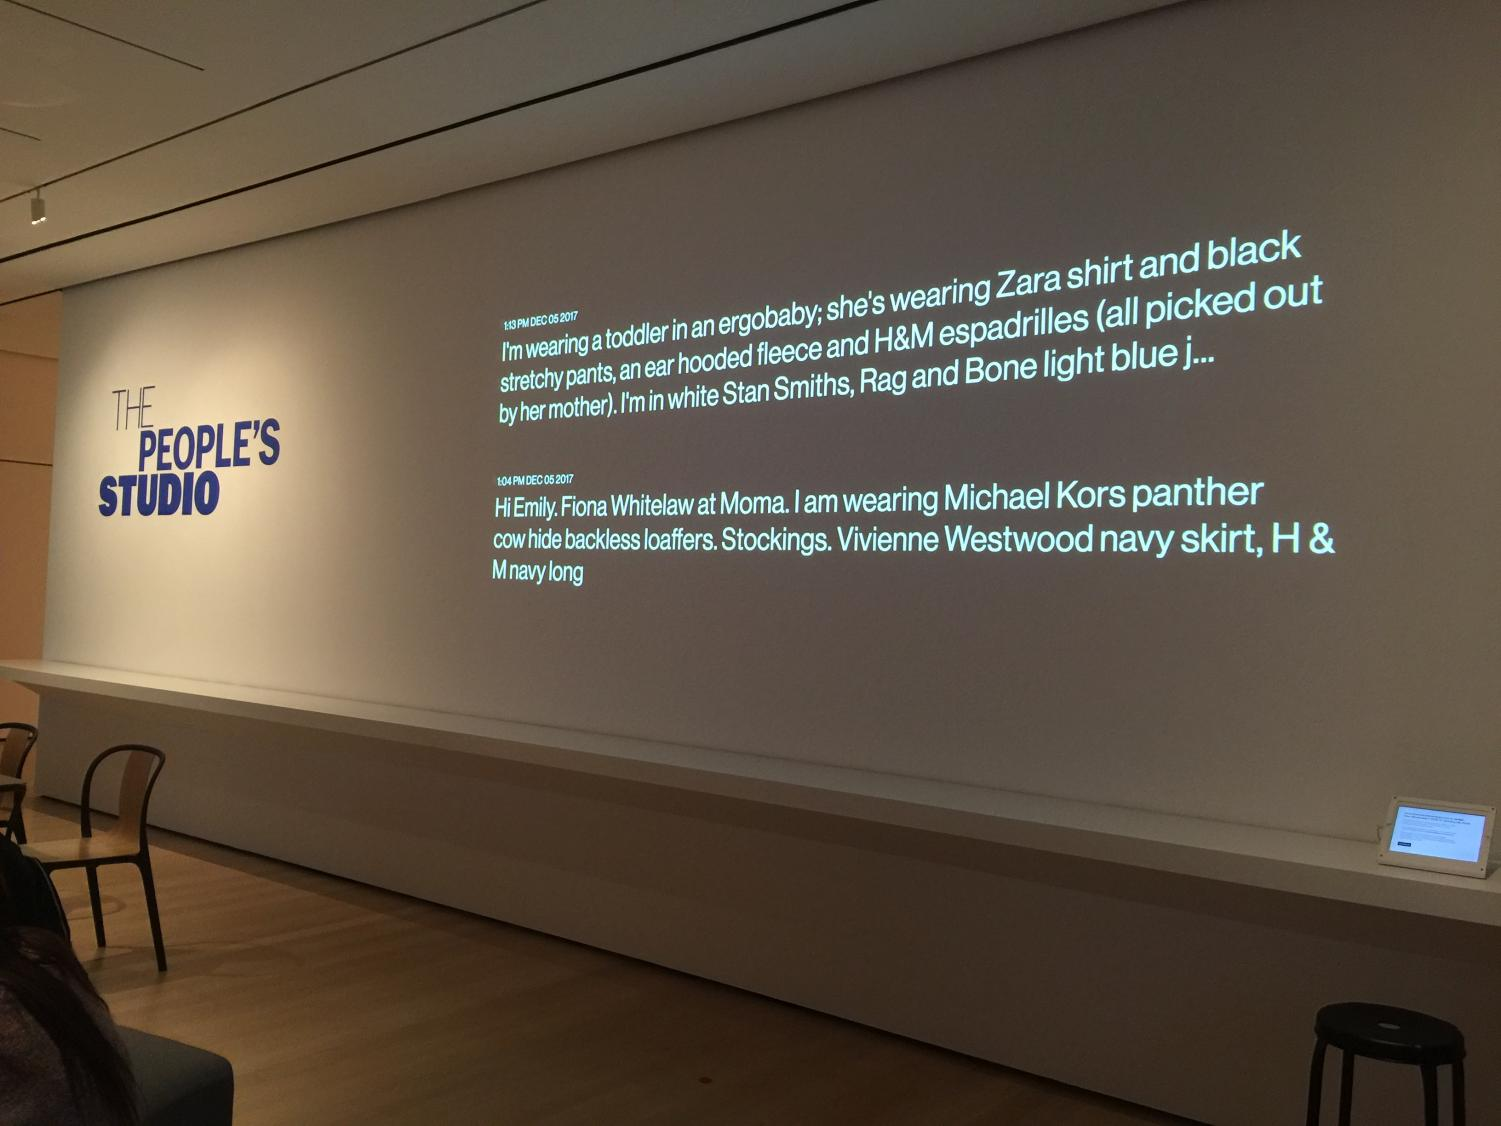 The exhibit shows descriptions of outfits worn by patrons at MoMA.